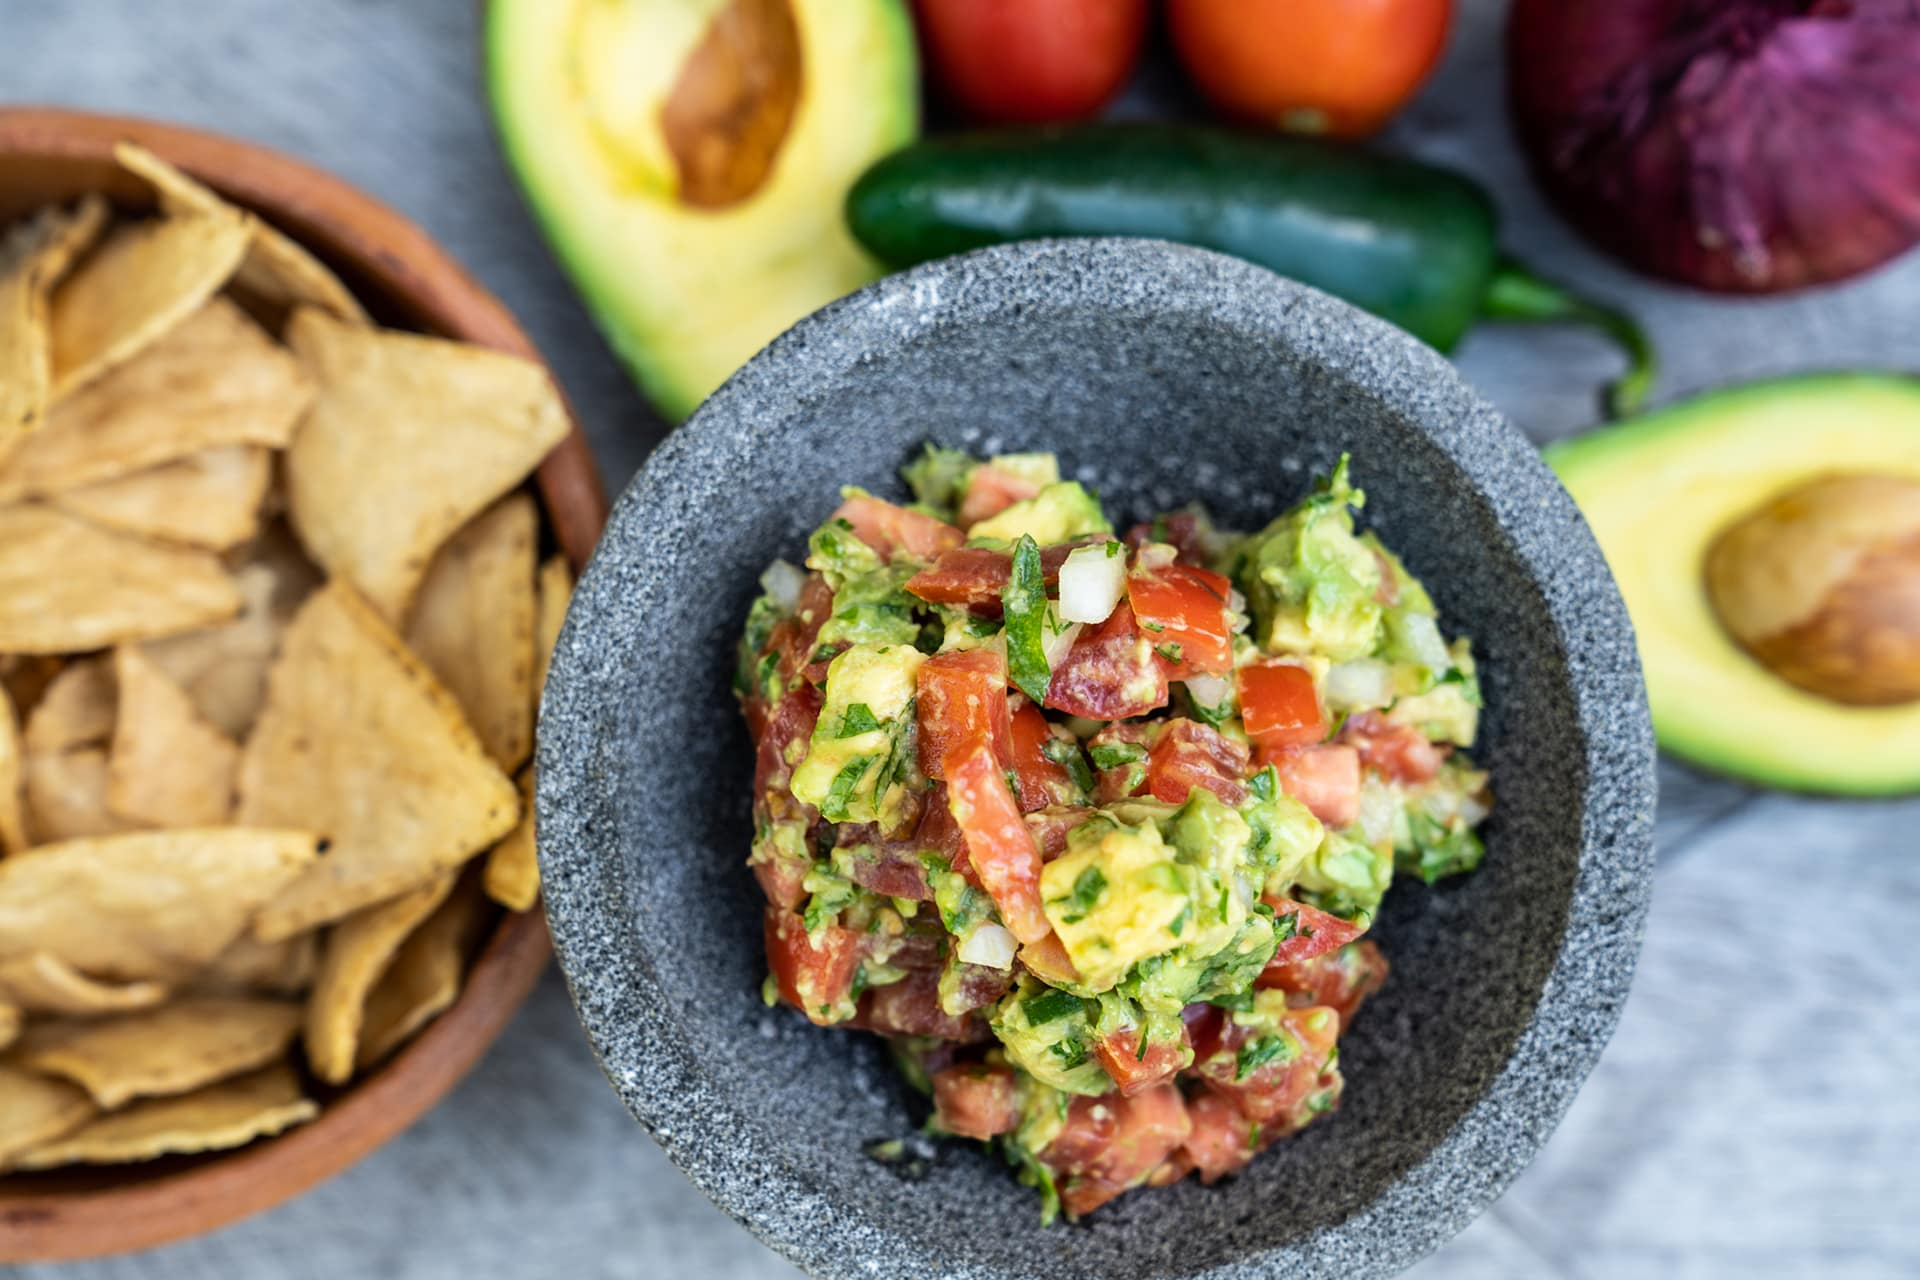 Healthy gourmet meals - We're here to nourish your body and soul with the most delicious vibrant food in Mexico, prepared by our in house private chef. Mouth watering tropical fruit, bowls brimming with guacamole, and all the flavors of Mexico adapted to healthy Goddess serving recipes.